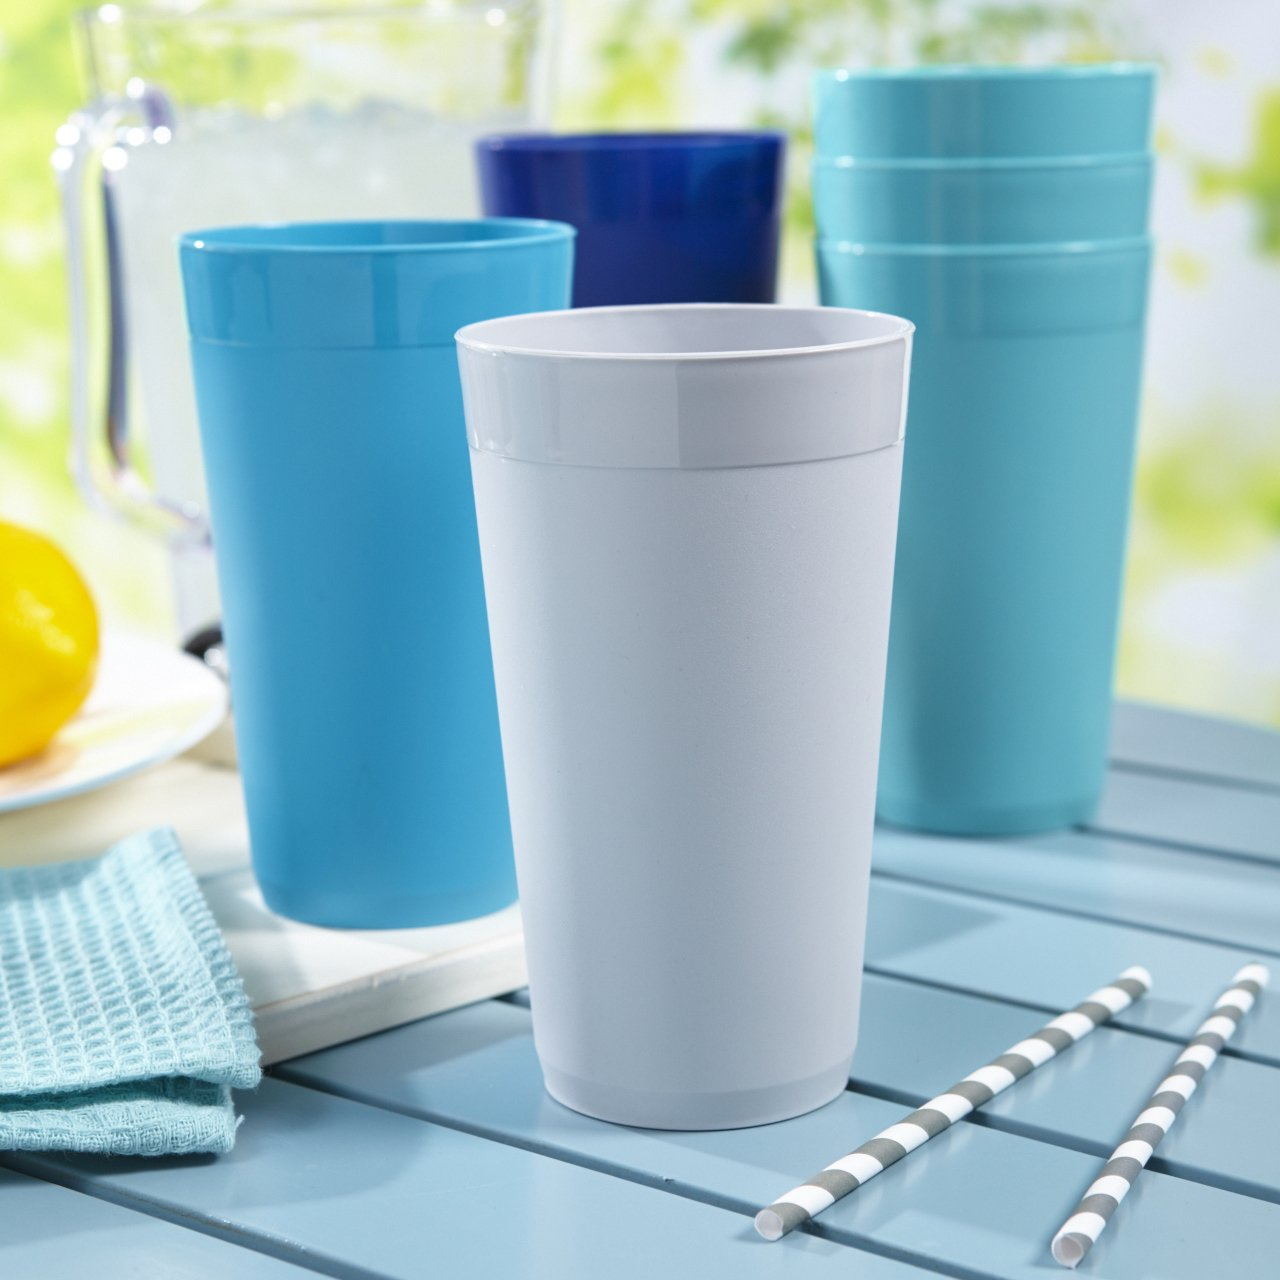 US Acrylic Newport 20-ounce Unbreakable Plastic Tumblers   set of 12 in 4 Coastal Colors by US Acrylic (Image #2)